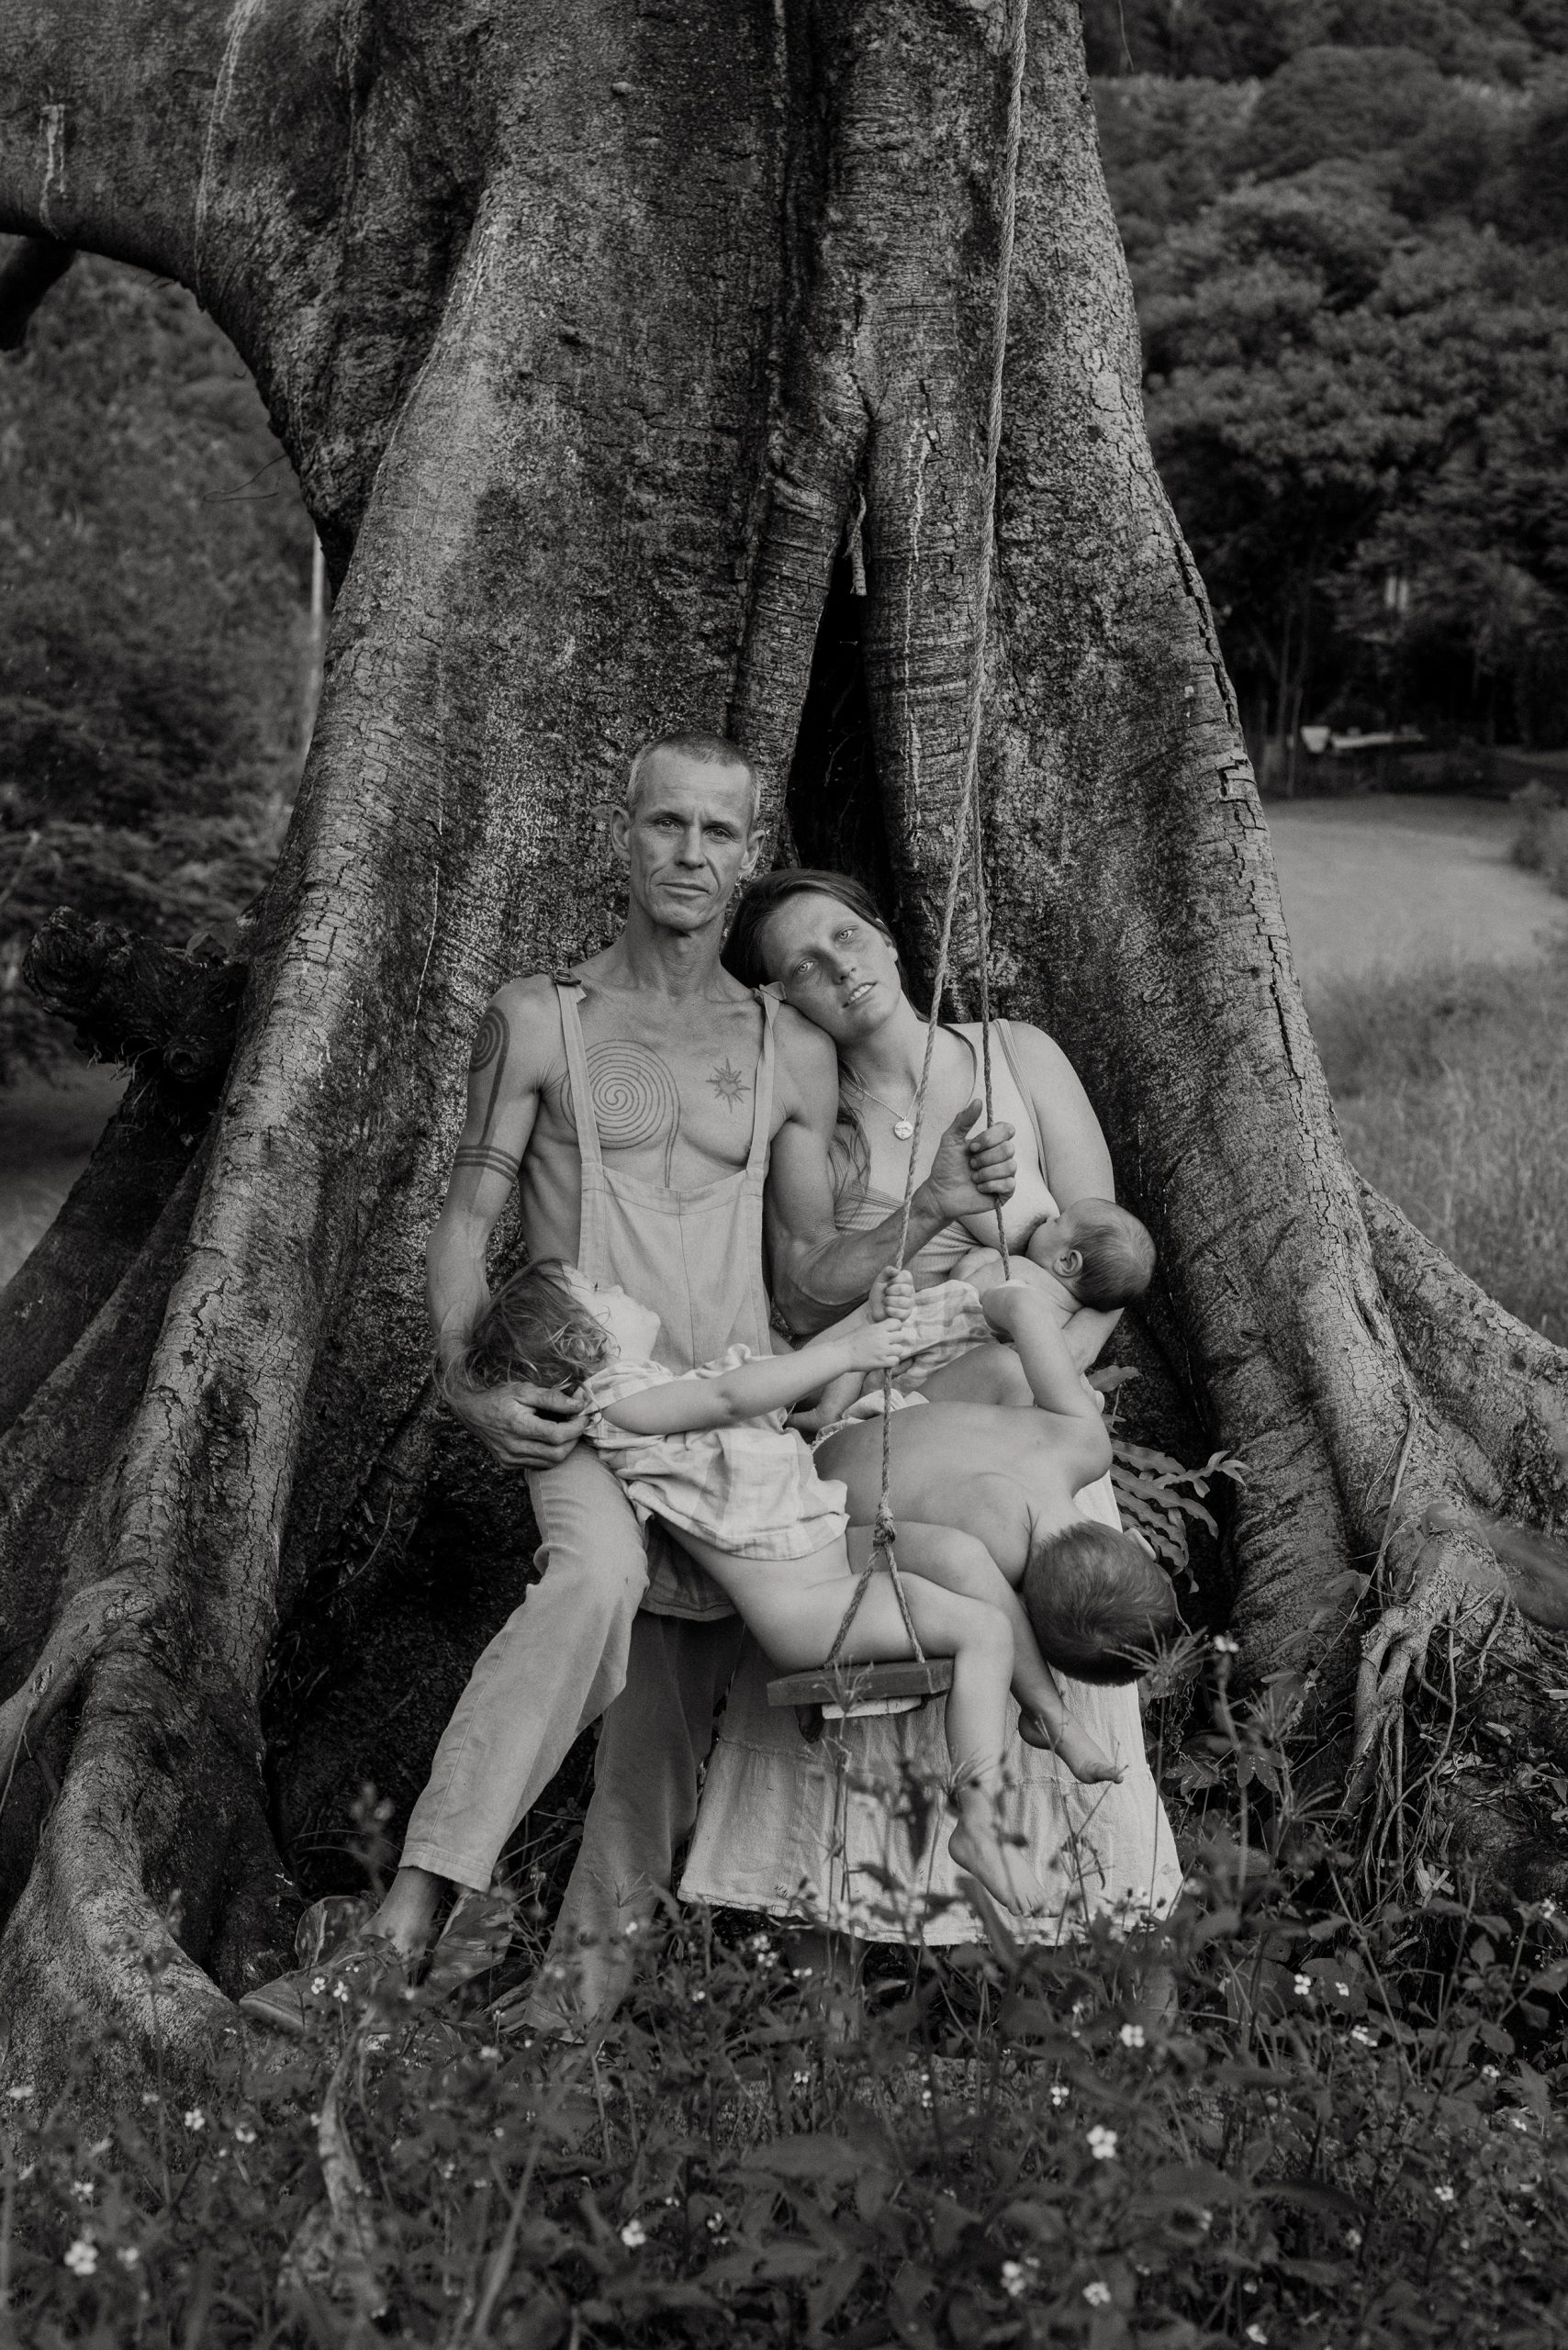 Medium format analog black&white portrait photograph of a family in Australia by Amy Woodward